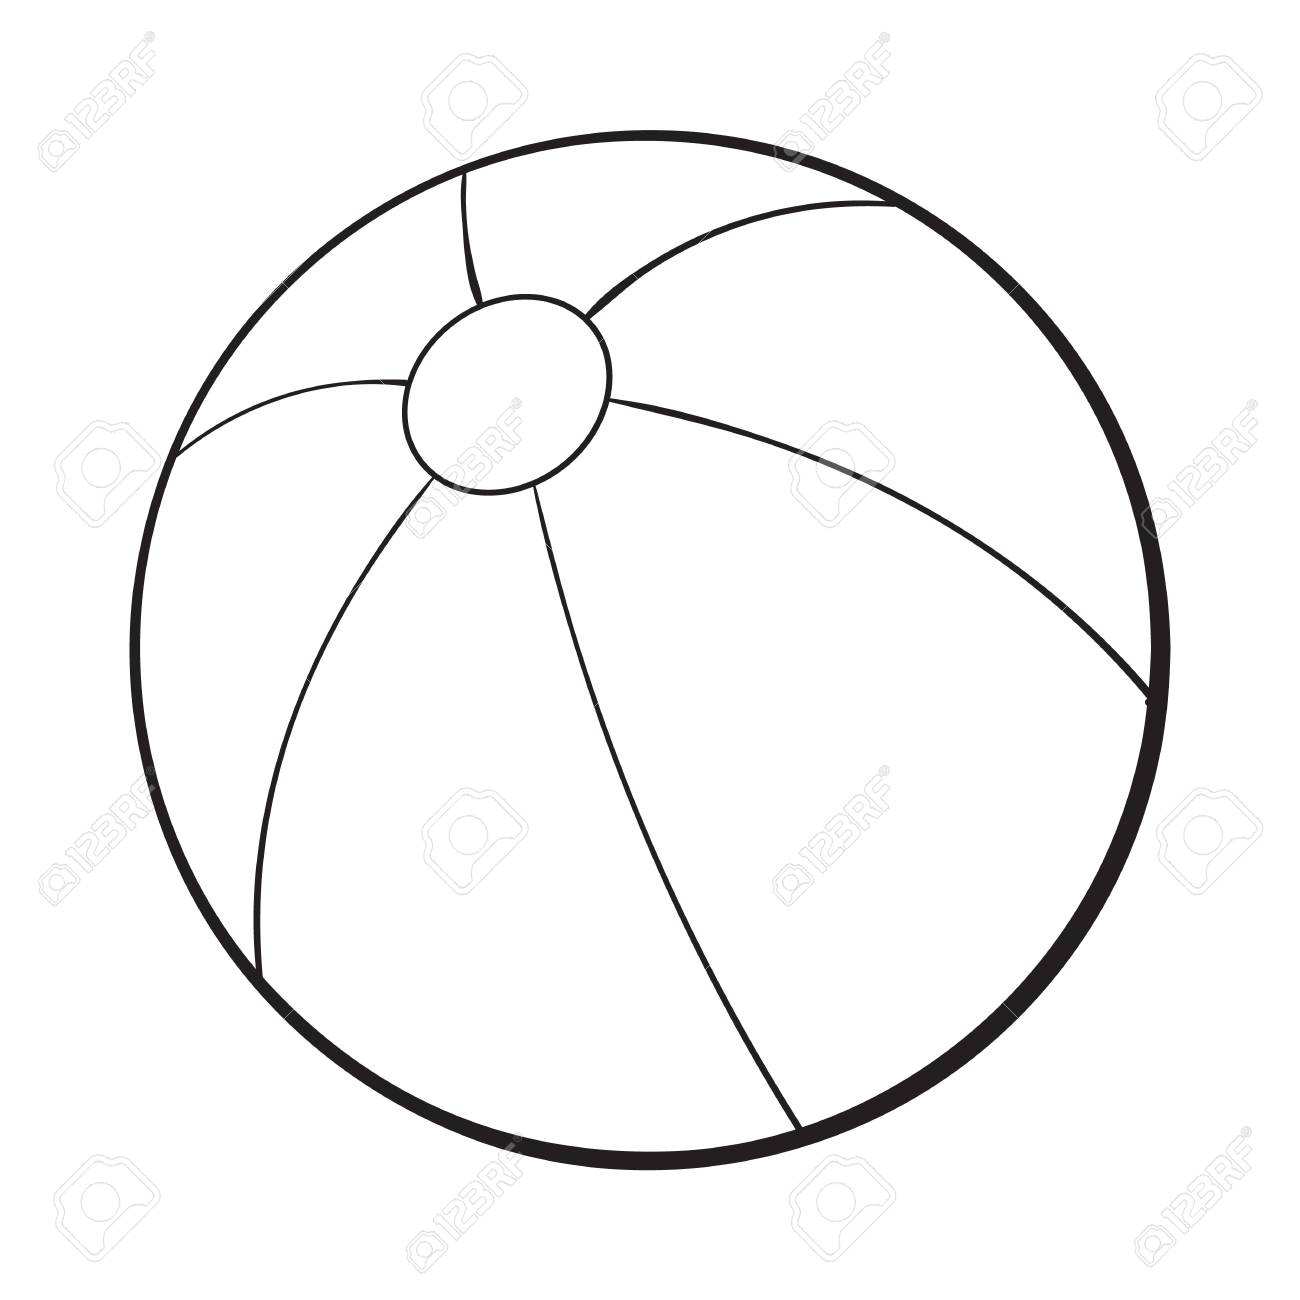 Black and white inflated beach ball, sketch style vector illustration...